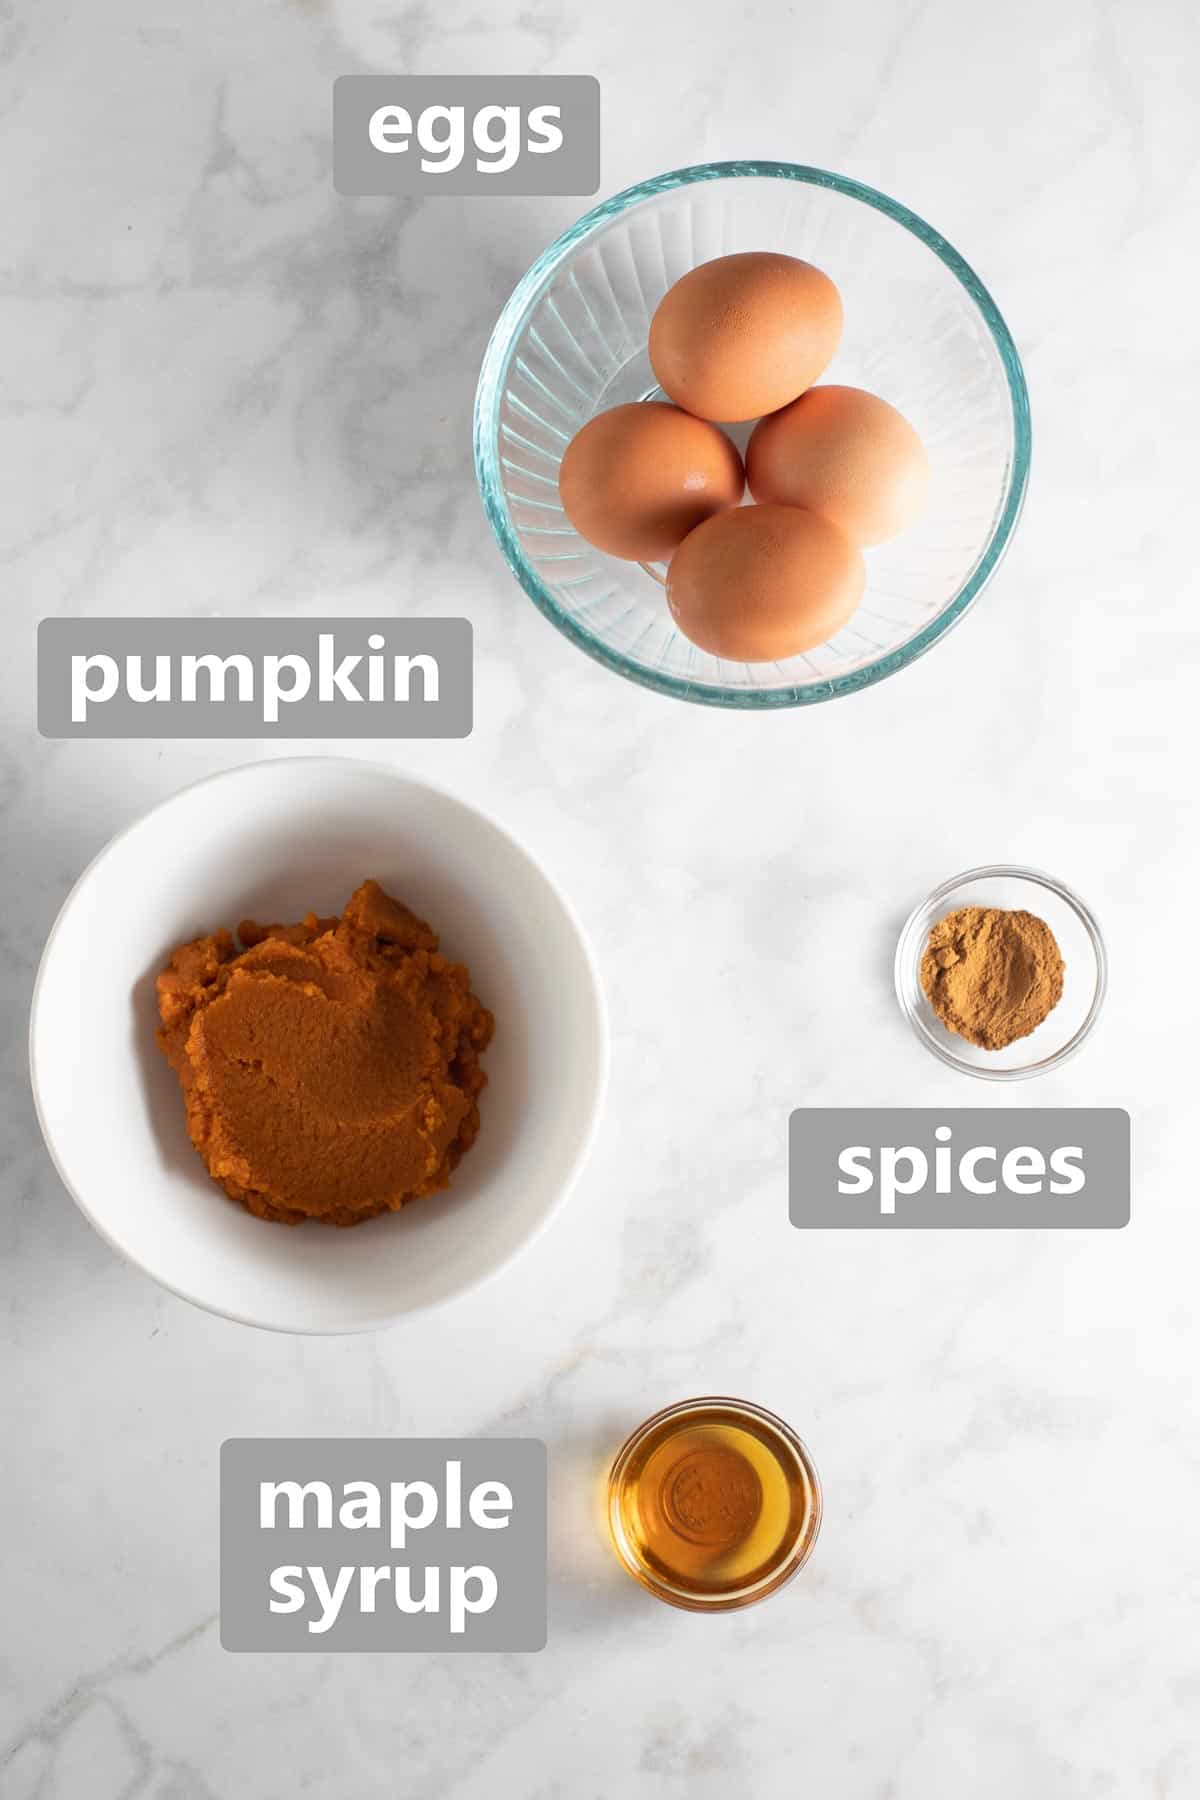 ingredients for pumpkin pancakes set out on marble background